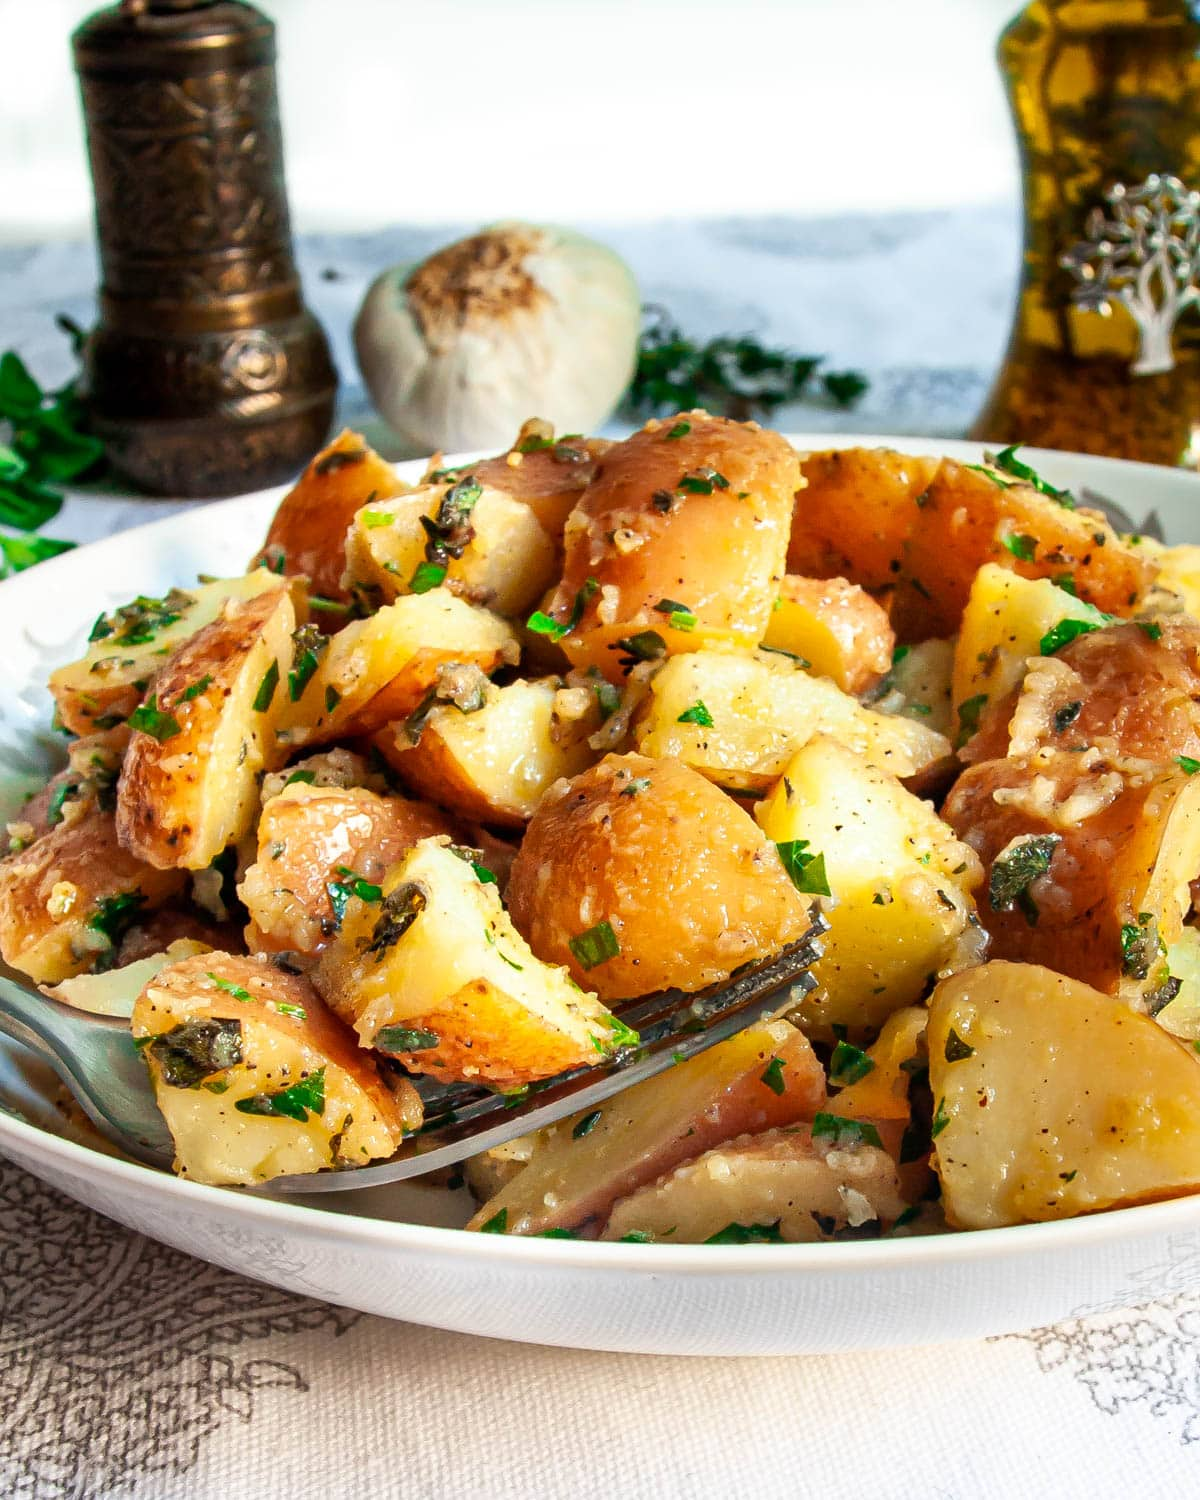 Garlic Herb Red Potato Salad in a white bowl